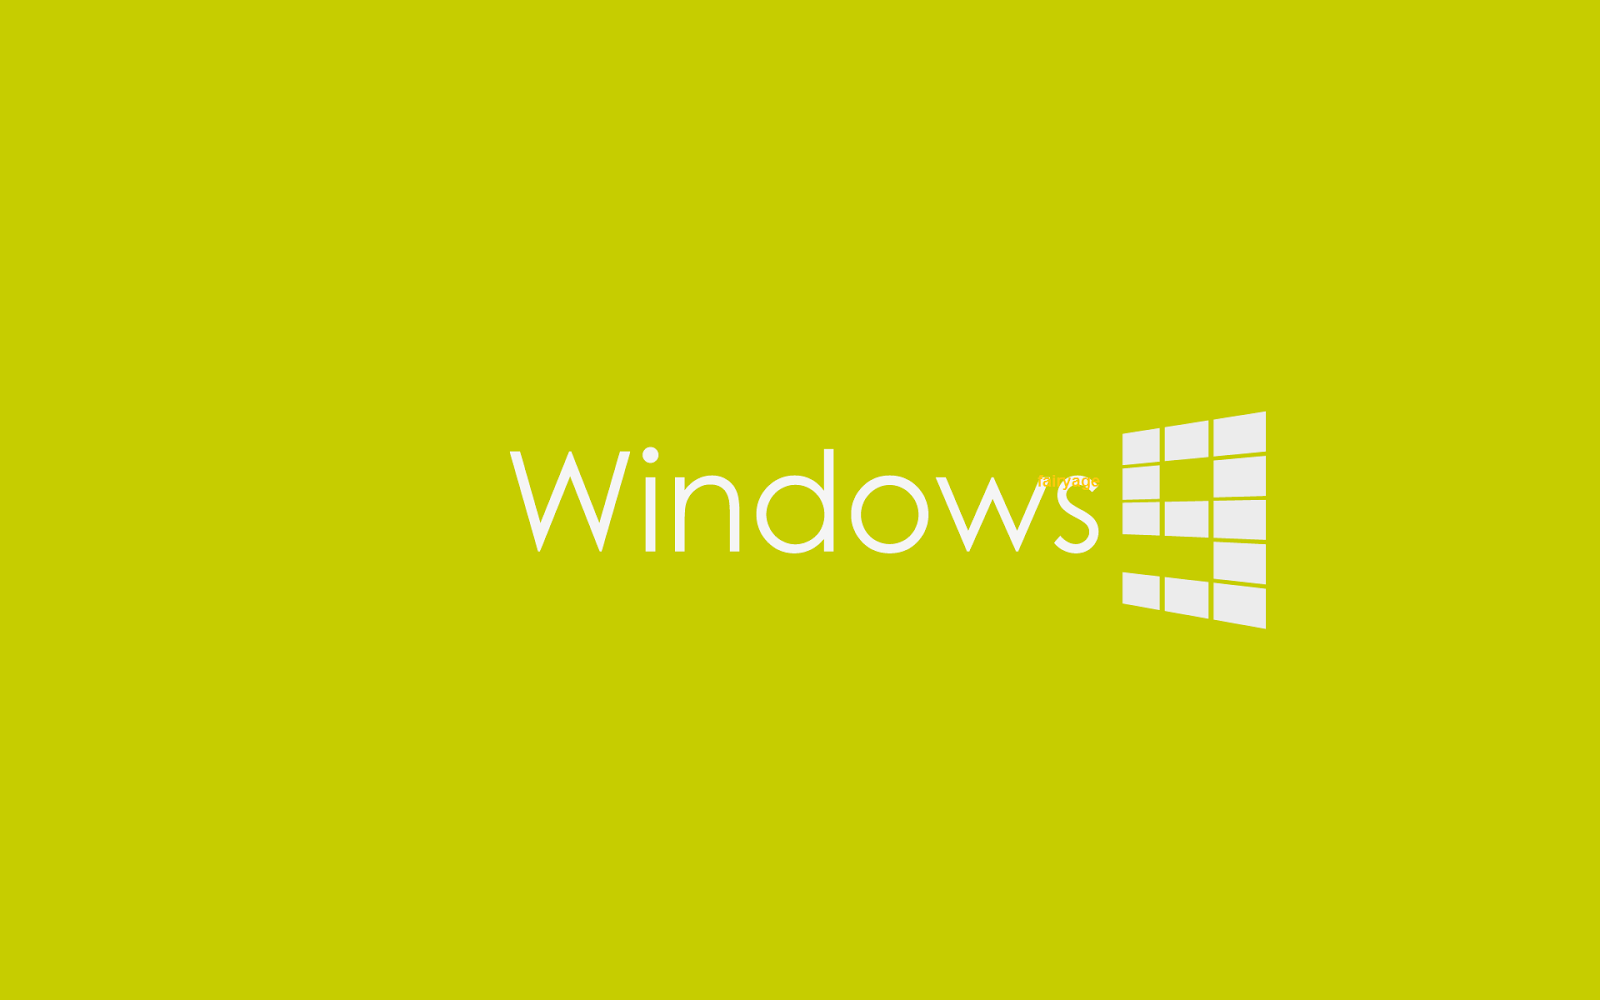 Windows-9-Wallpapers-Yellow fairyage